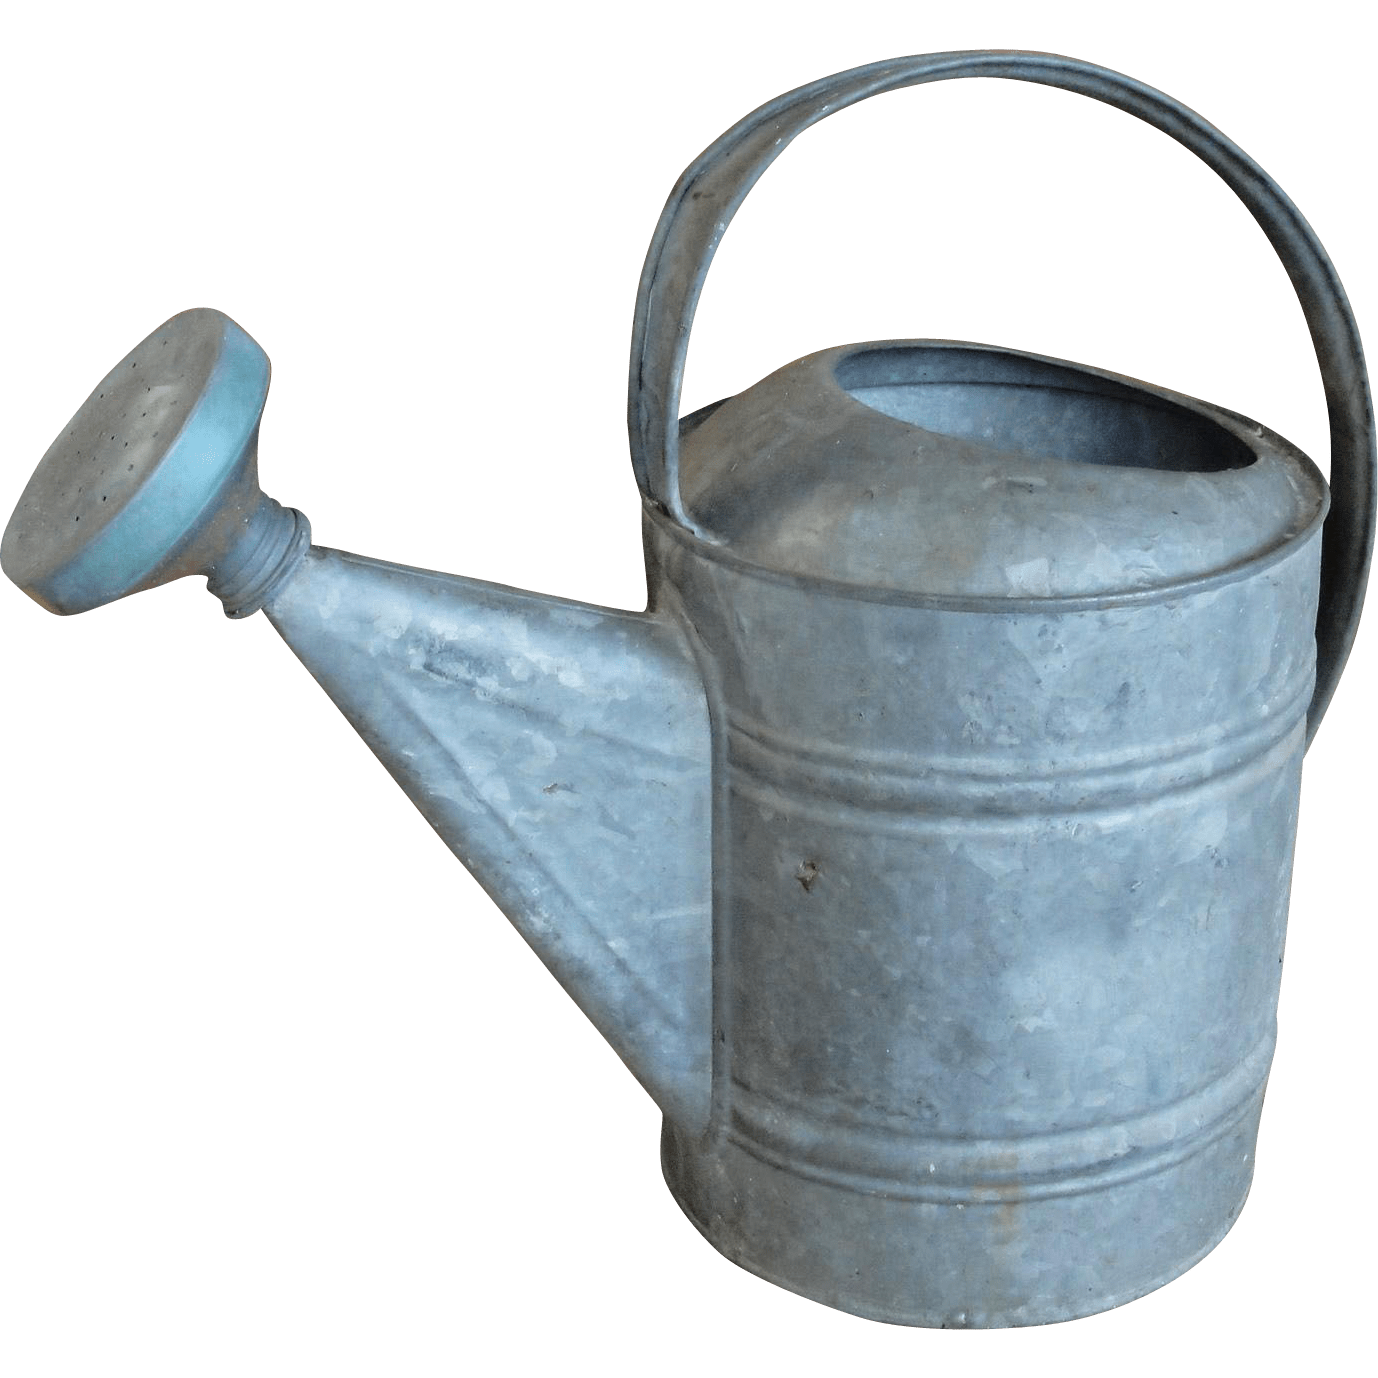 Galvanized Watering Cans Vintage Galvanized Metal Garden Watering Sprinkling Can